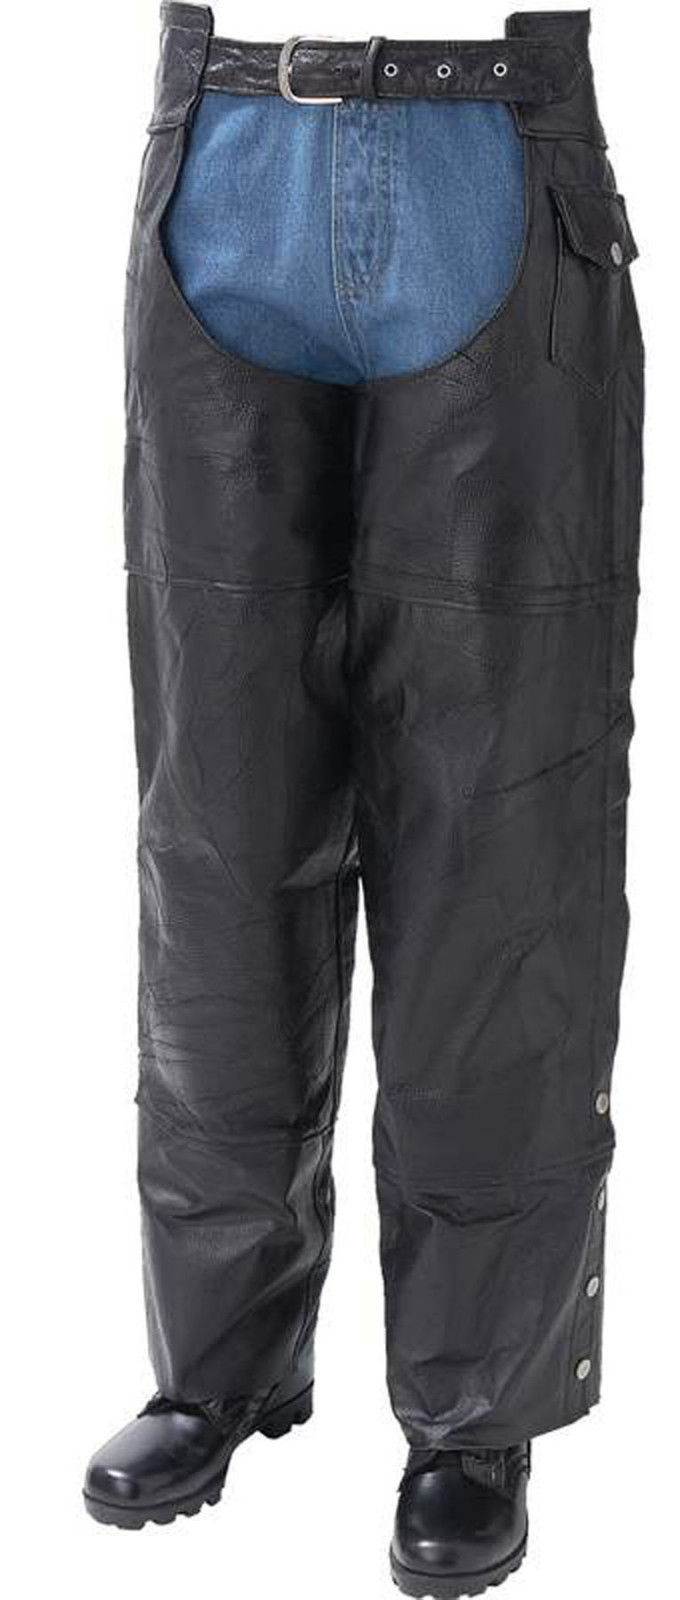 Black Leather Motorcycle Riding Chaps Lined Men Women Unisex Biker-Style